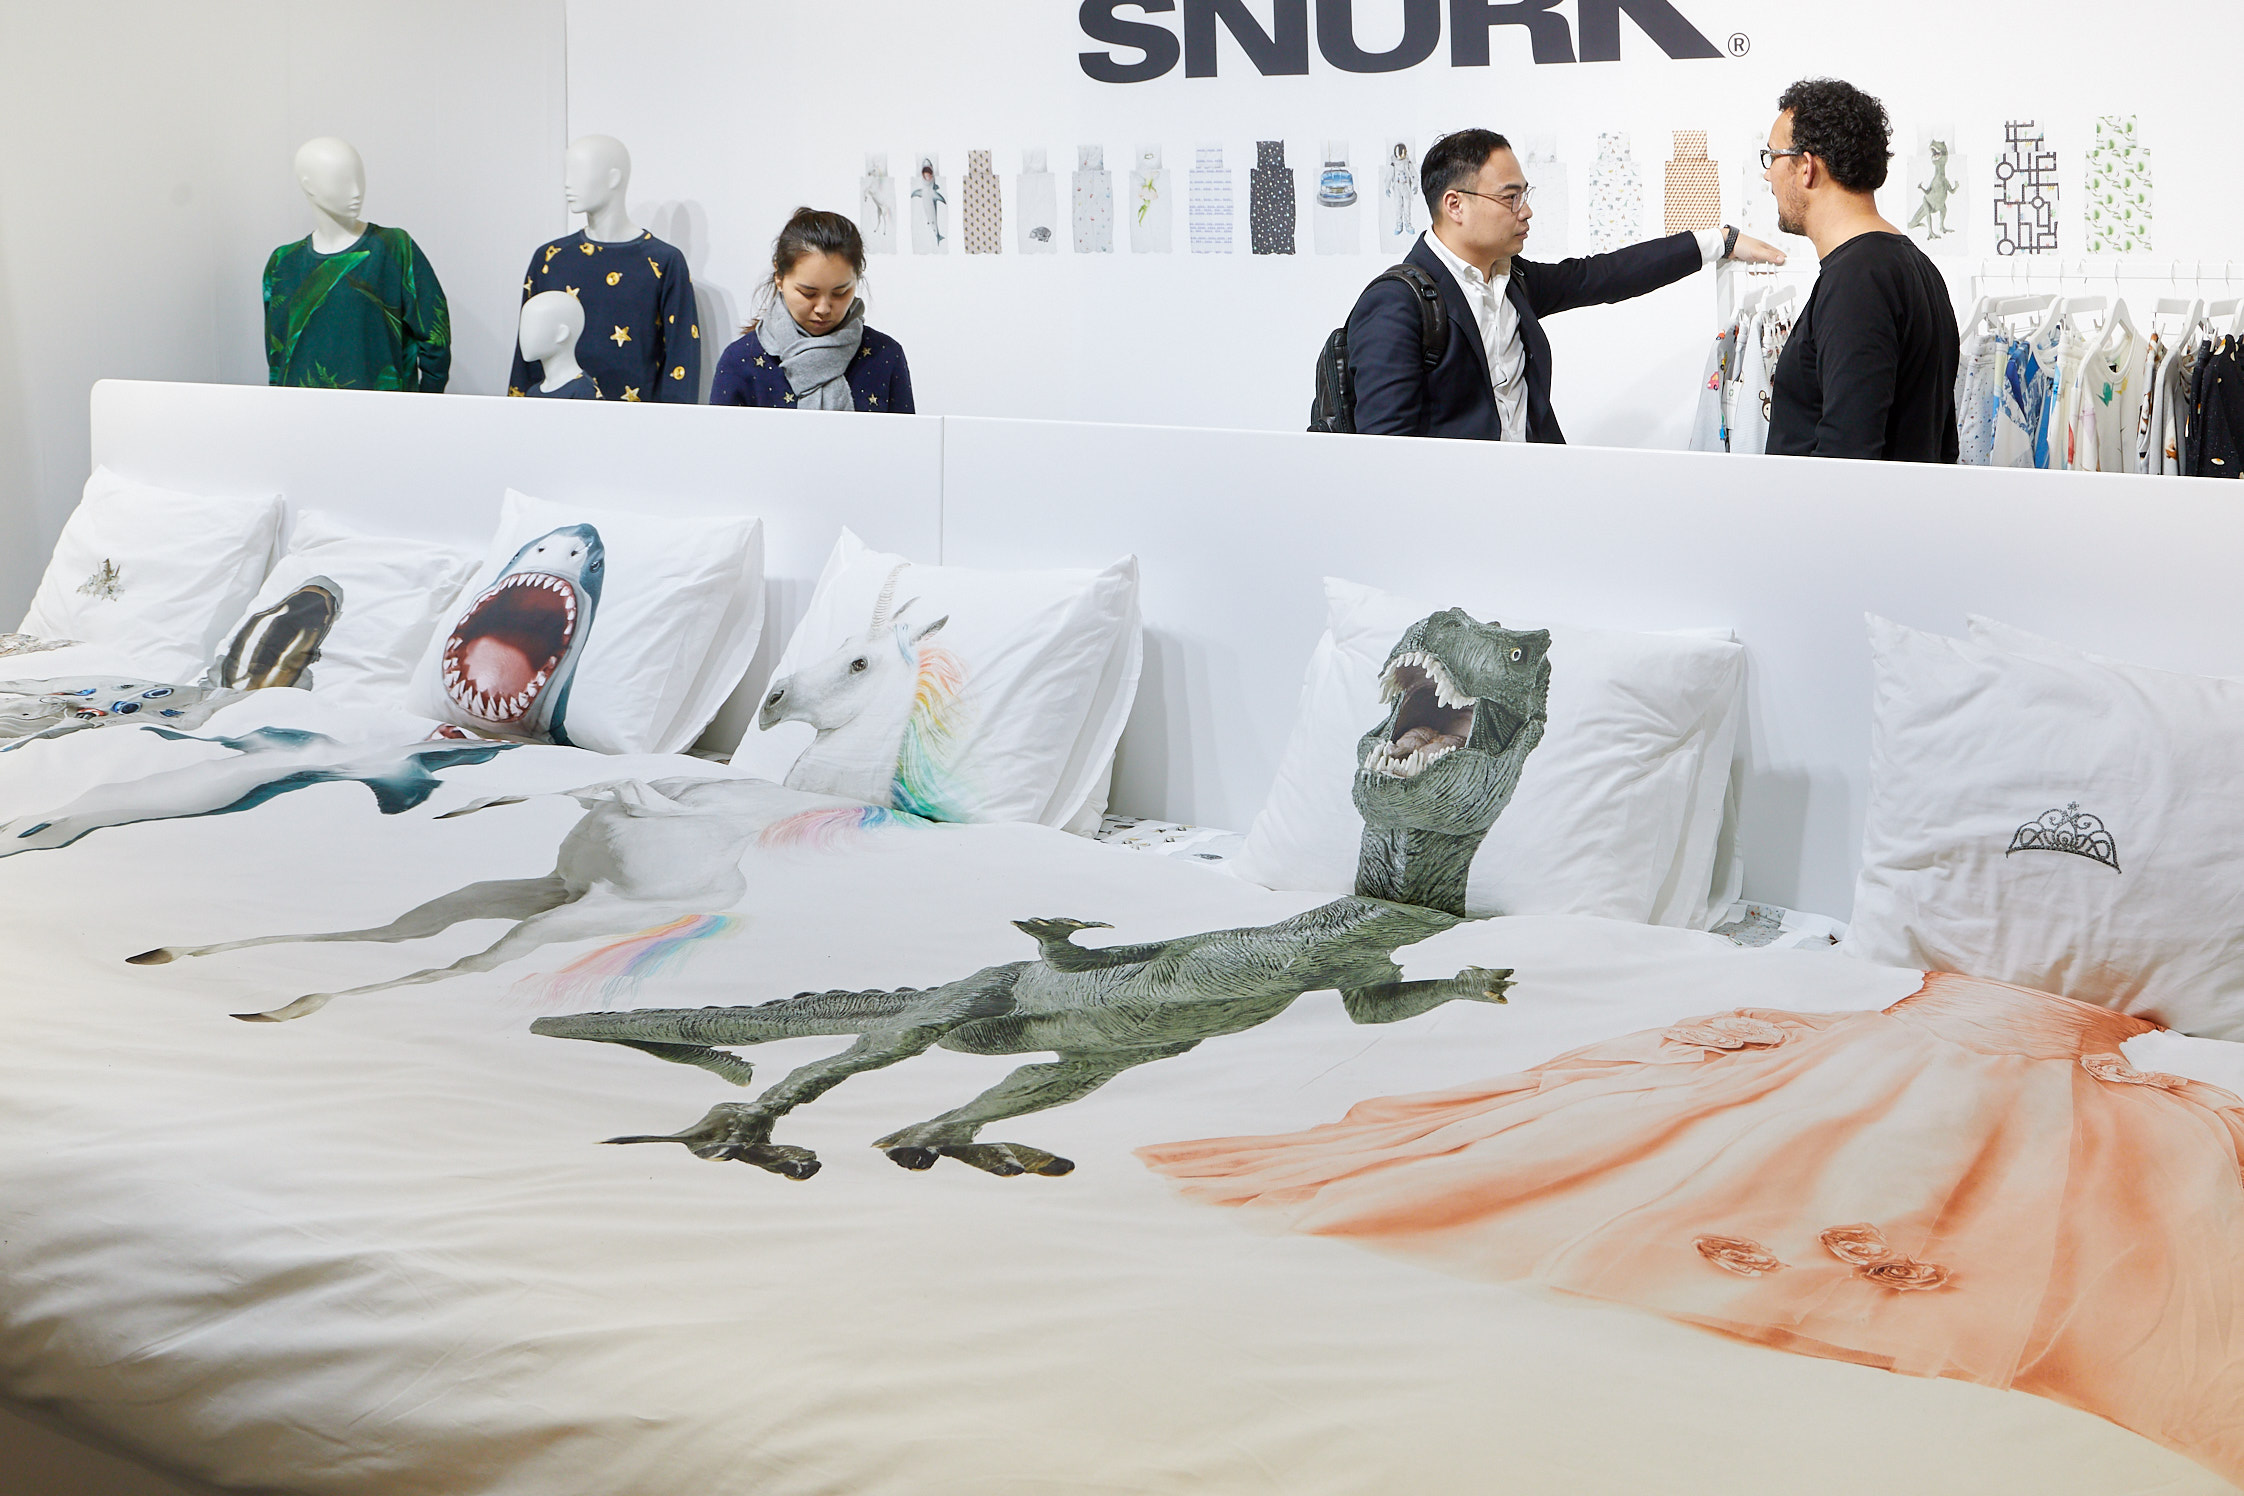 Bed & Bath Fashion (Brands) / SNURK B.V.